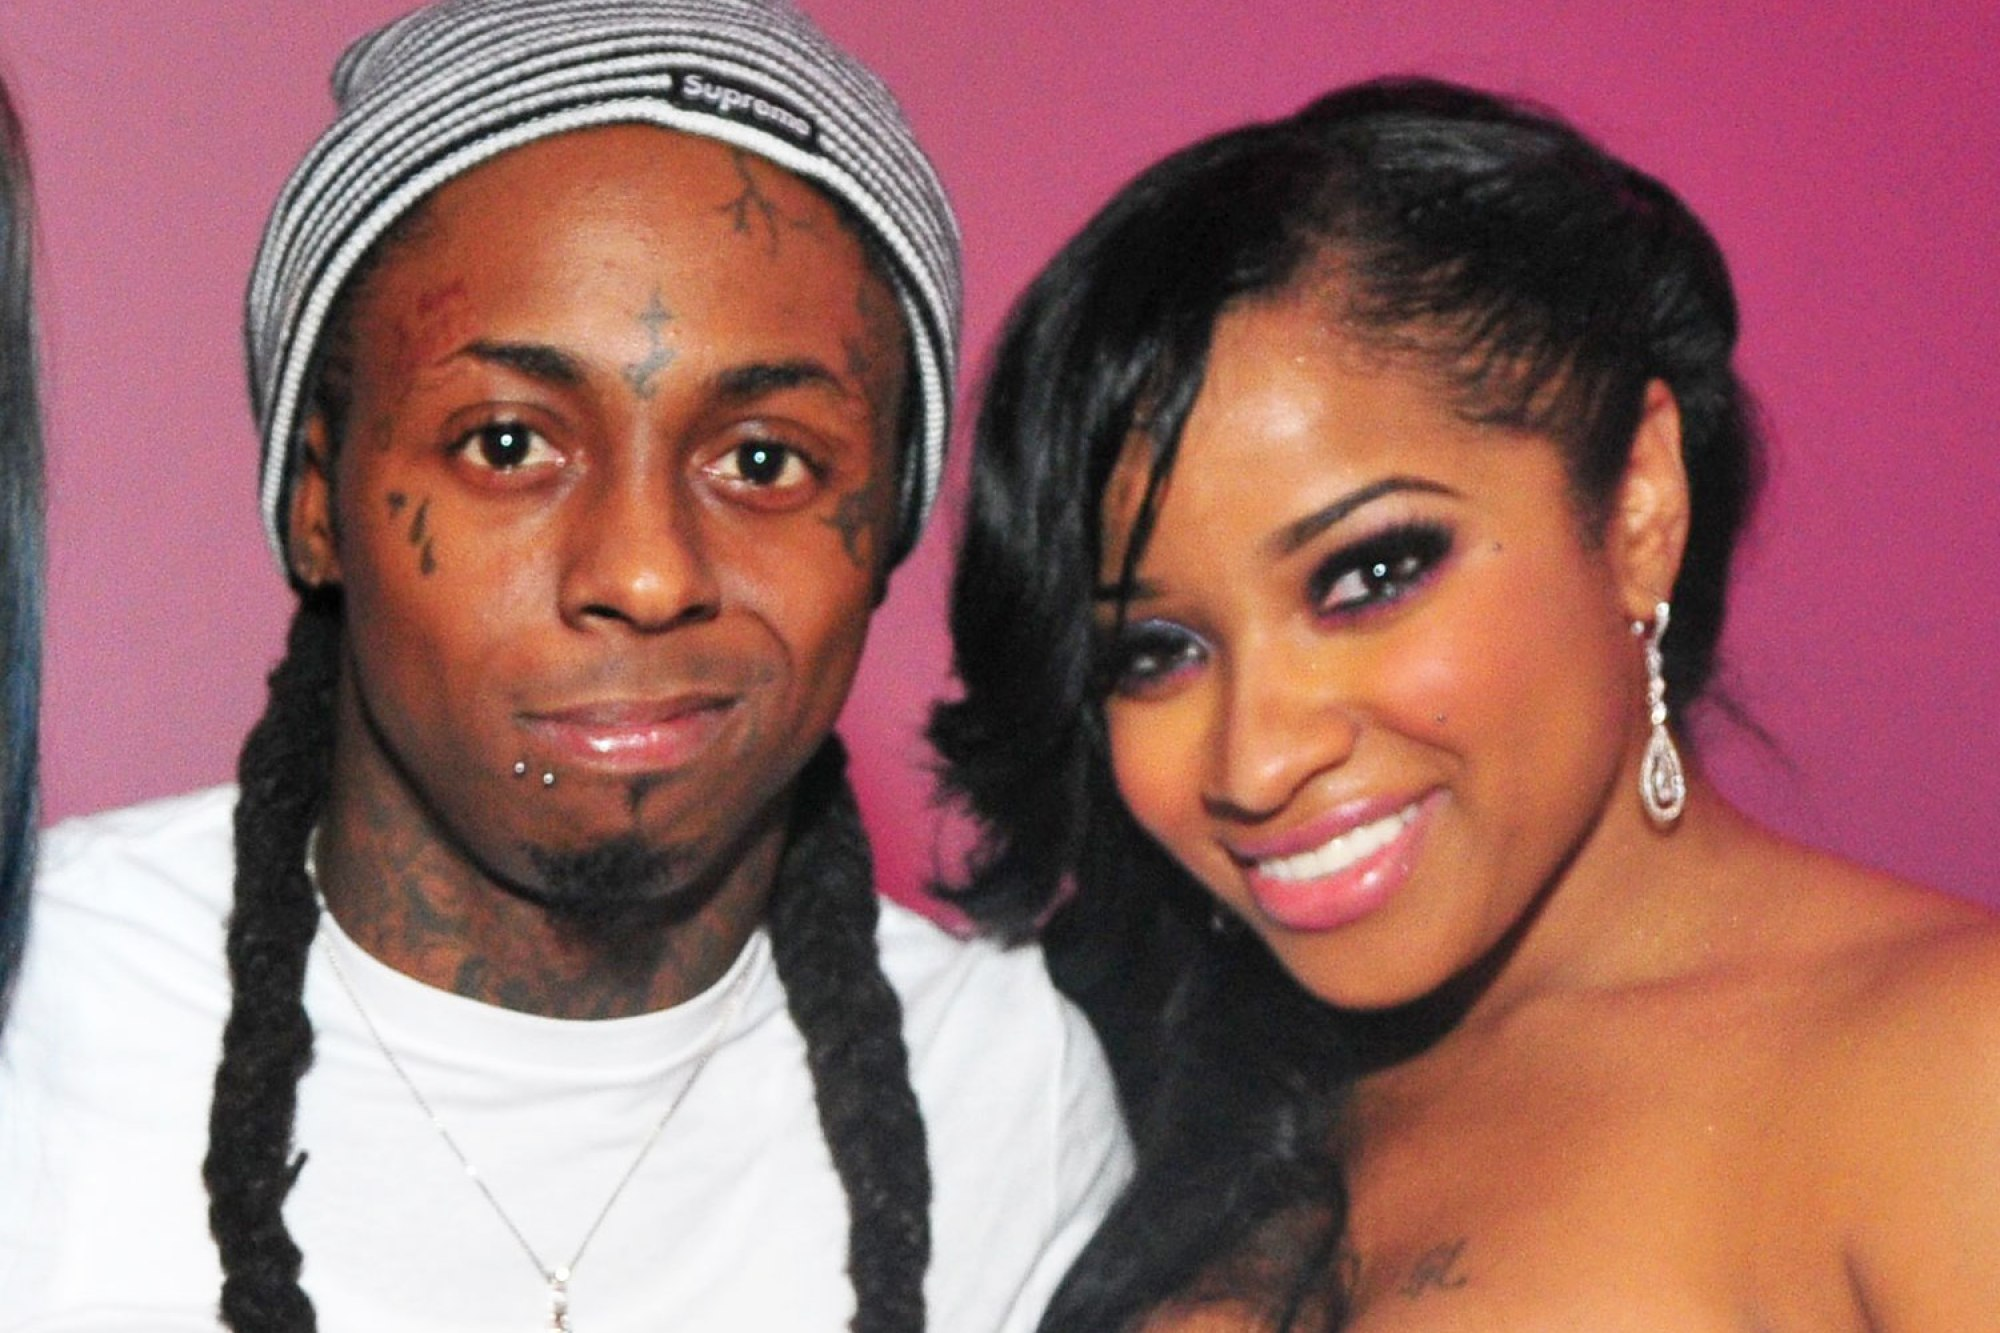 Toya Wright and ex-husband Lil Wayne takes a picture together.